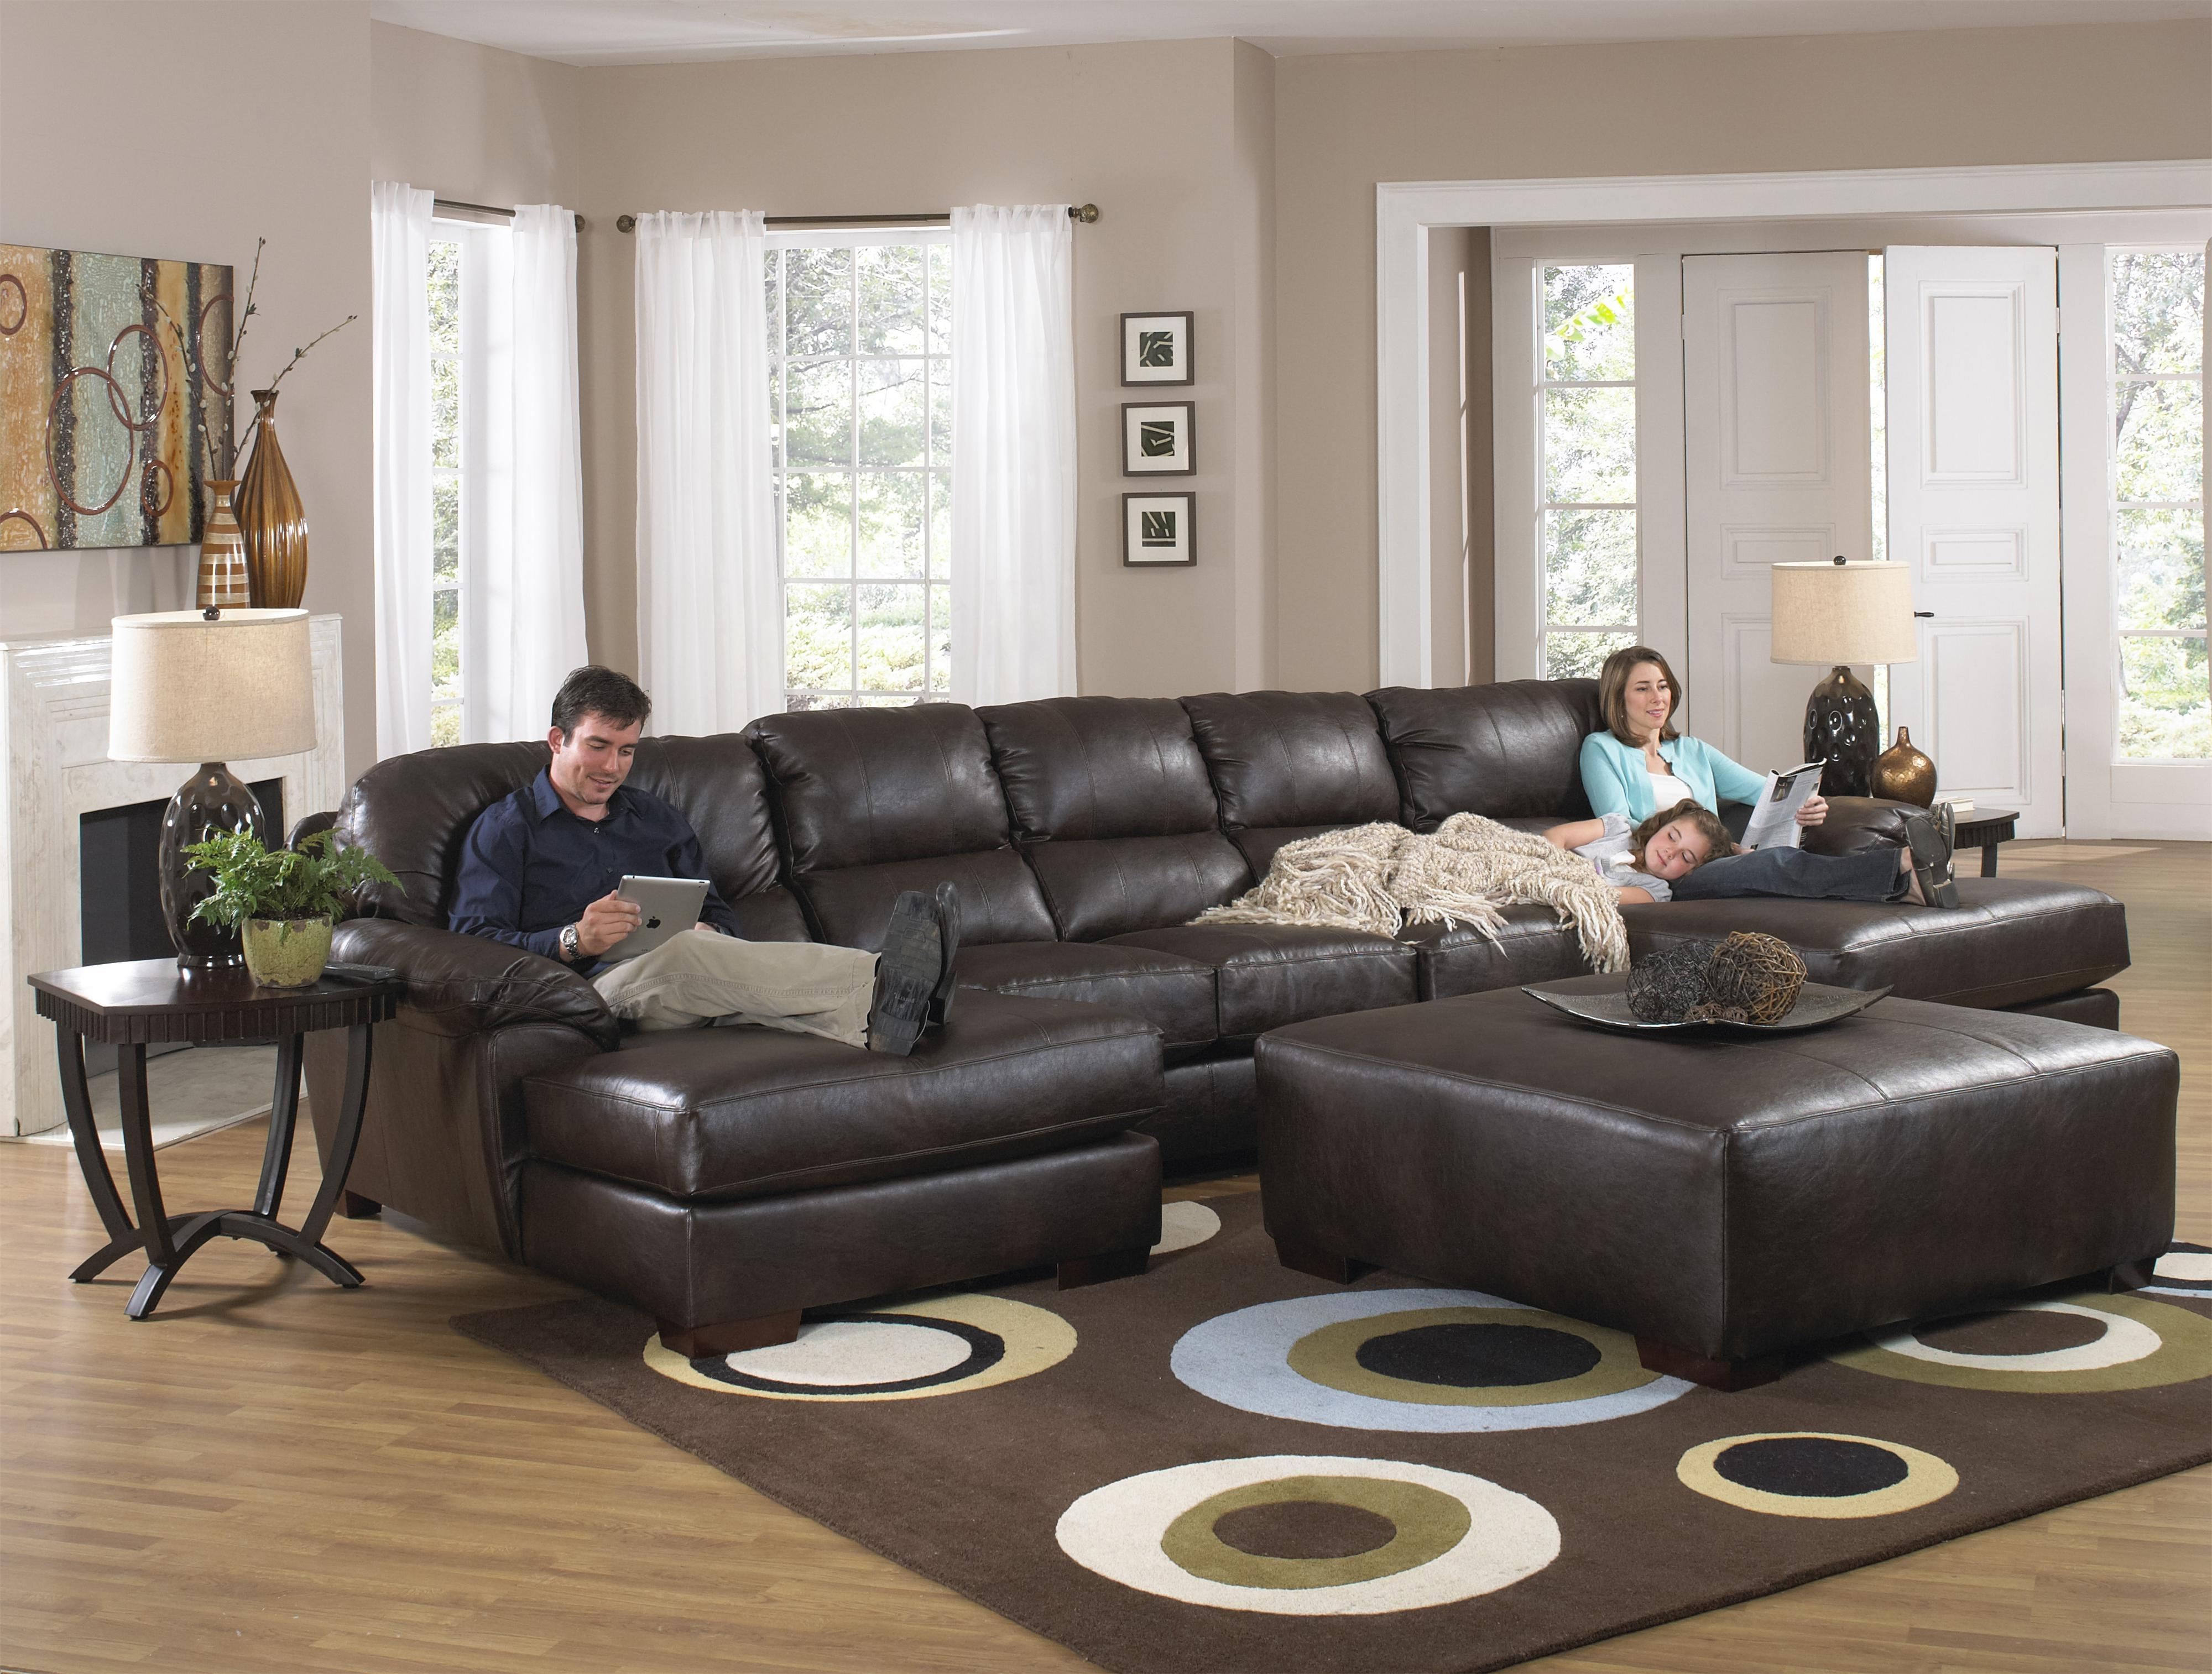 Small Sectional Sofas With Chaise And Ottoman Inside Well Liked Sofa : Beautiful Large Sectional Sofa With Chaise L Shaped Cream (View 8 of 20)